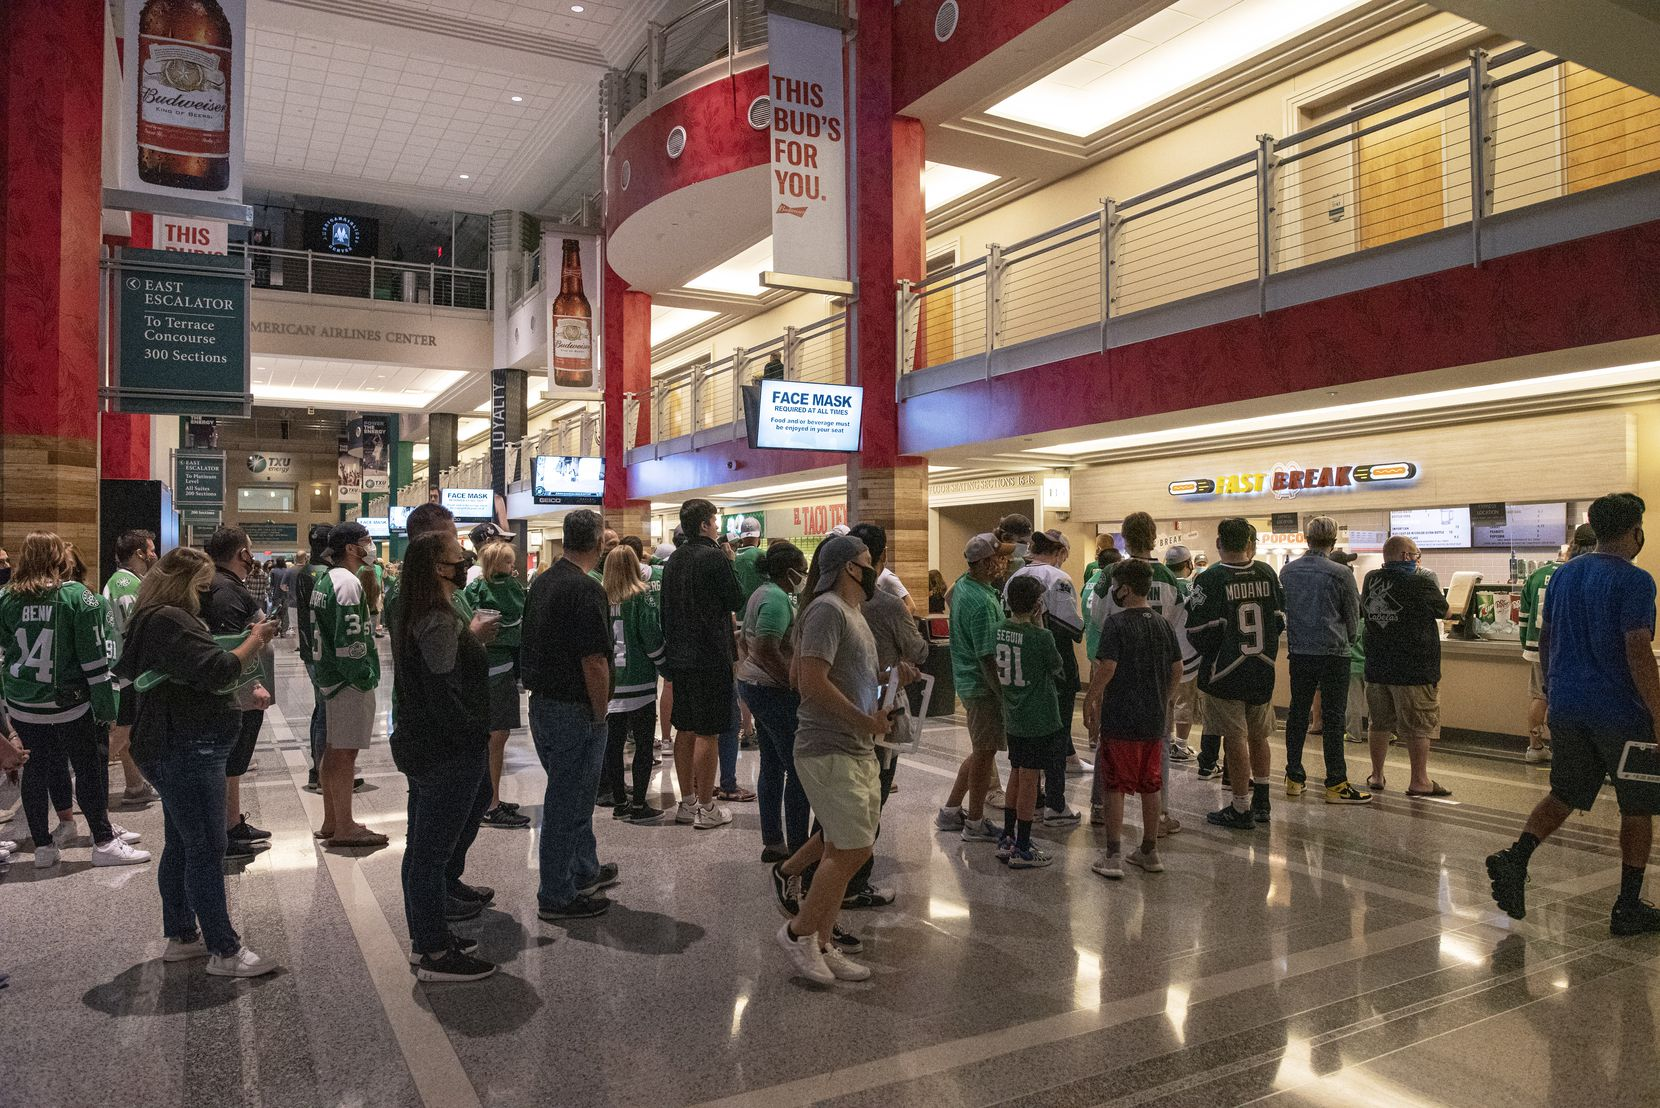 Dallas Stars fans wait in line at concession stands during a watch party at the American Airlines Center for game 1 of the Stanley Cup Final, Saturday, on Sept. 19, 2020. Ben Torres/Special Contributor